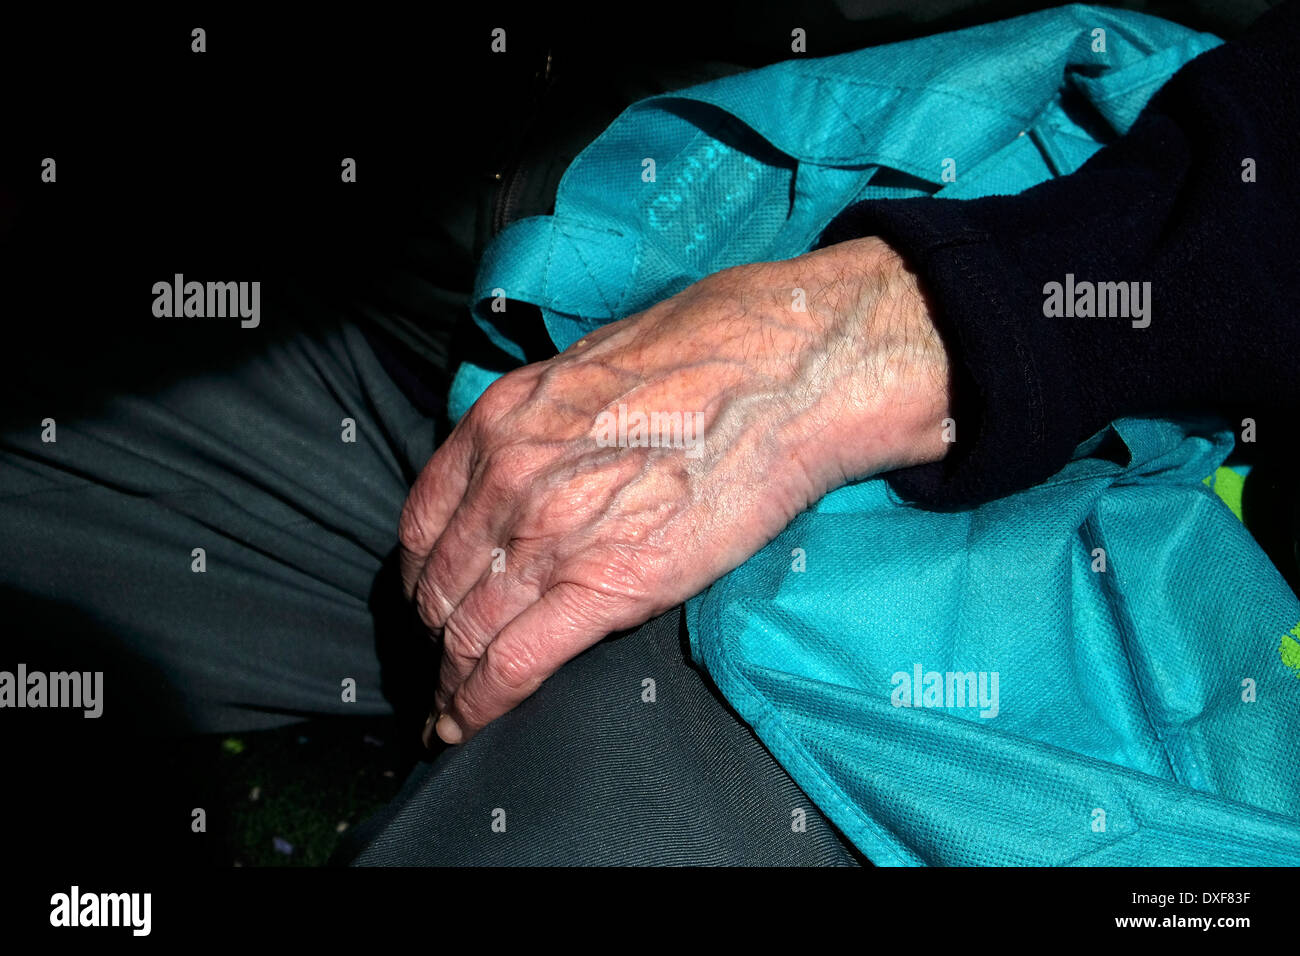 The left hand of an old man. - Stock Image